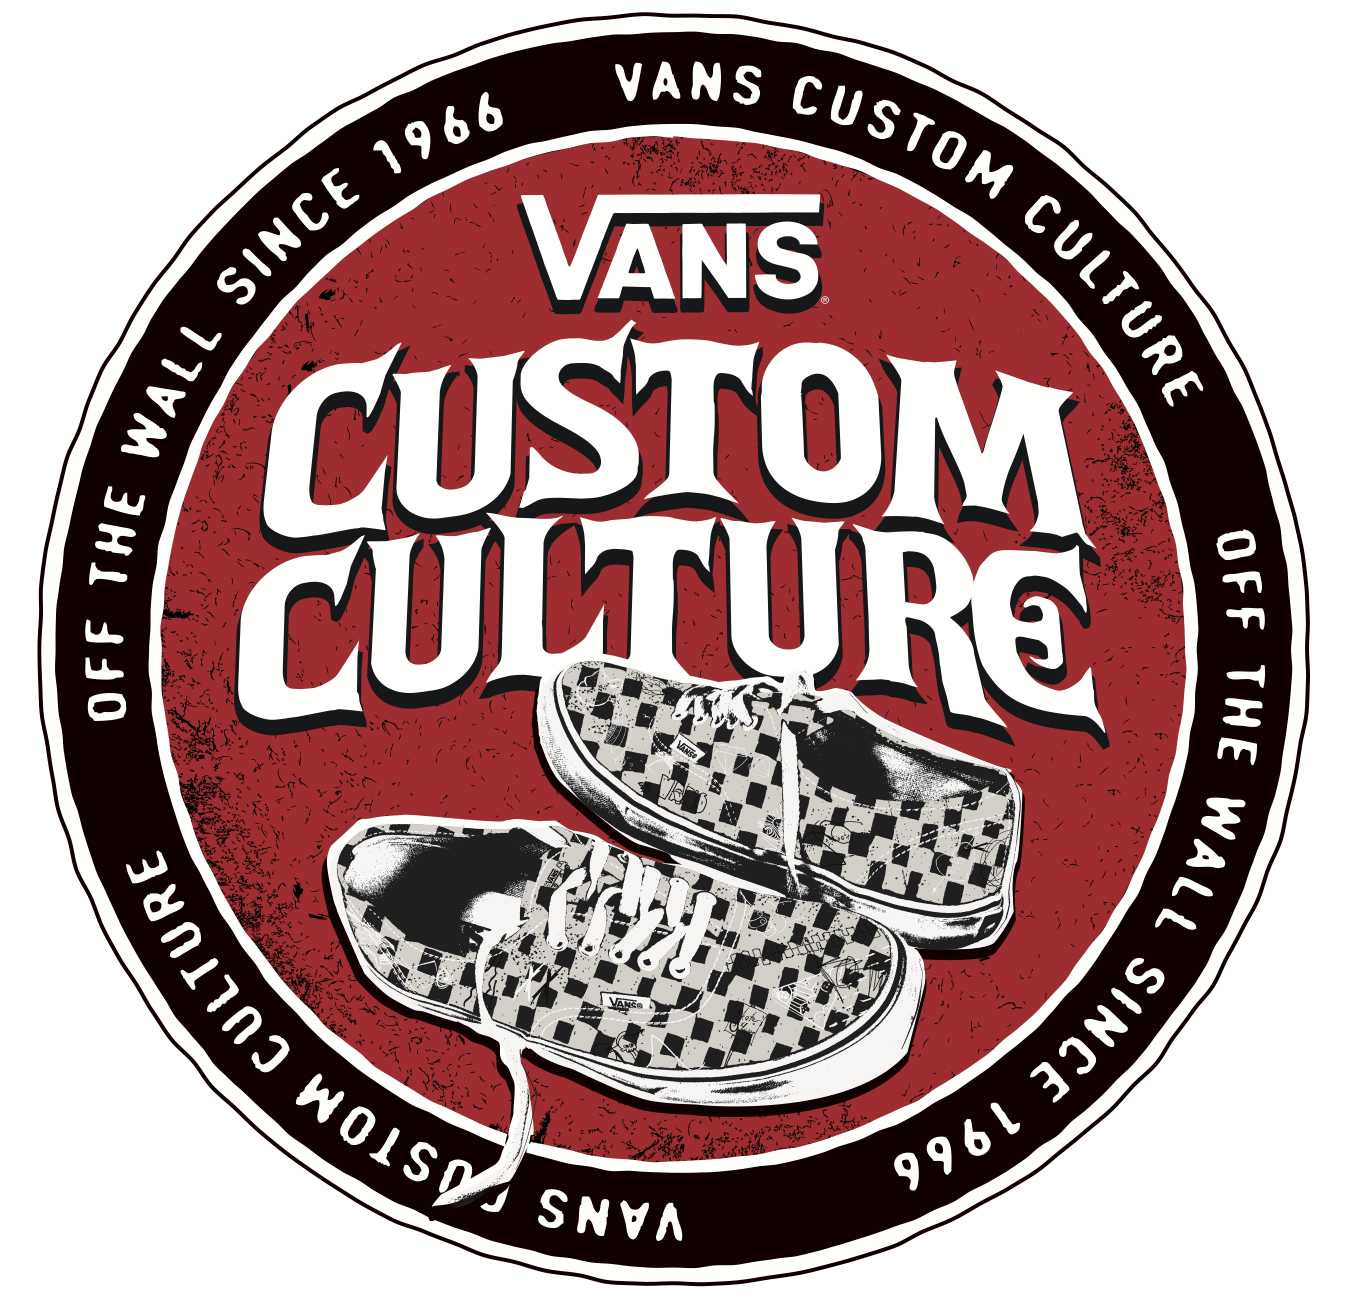 2014 Vans Custom Culture Contest: CC 2014 LOGO.jpg